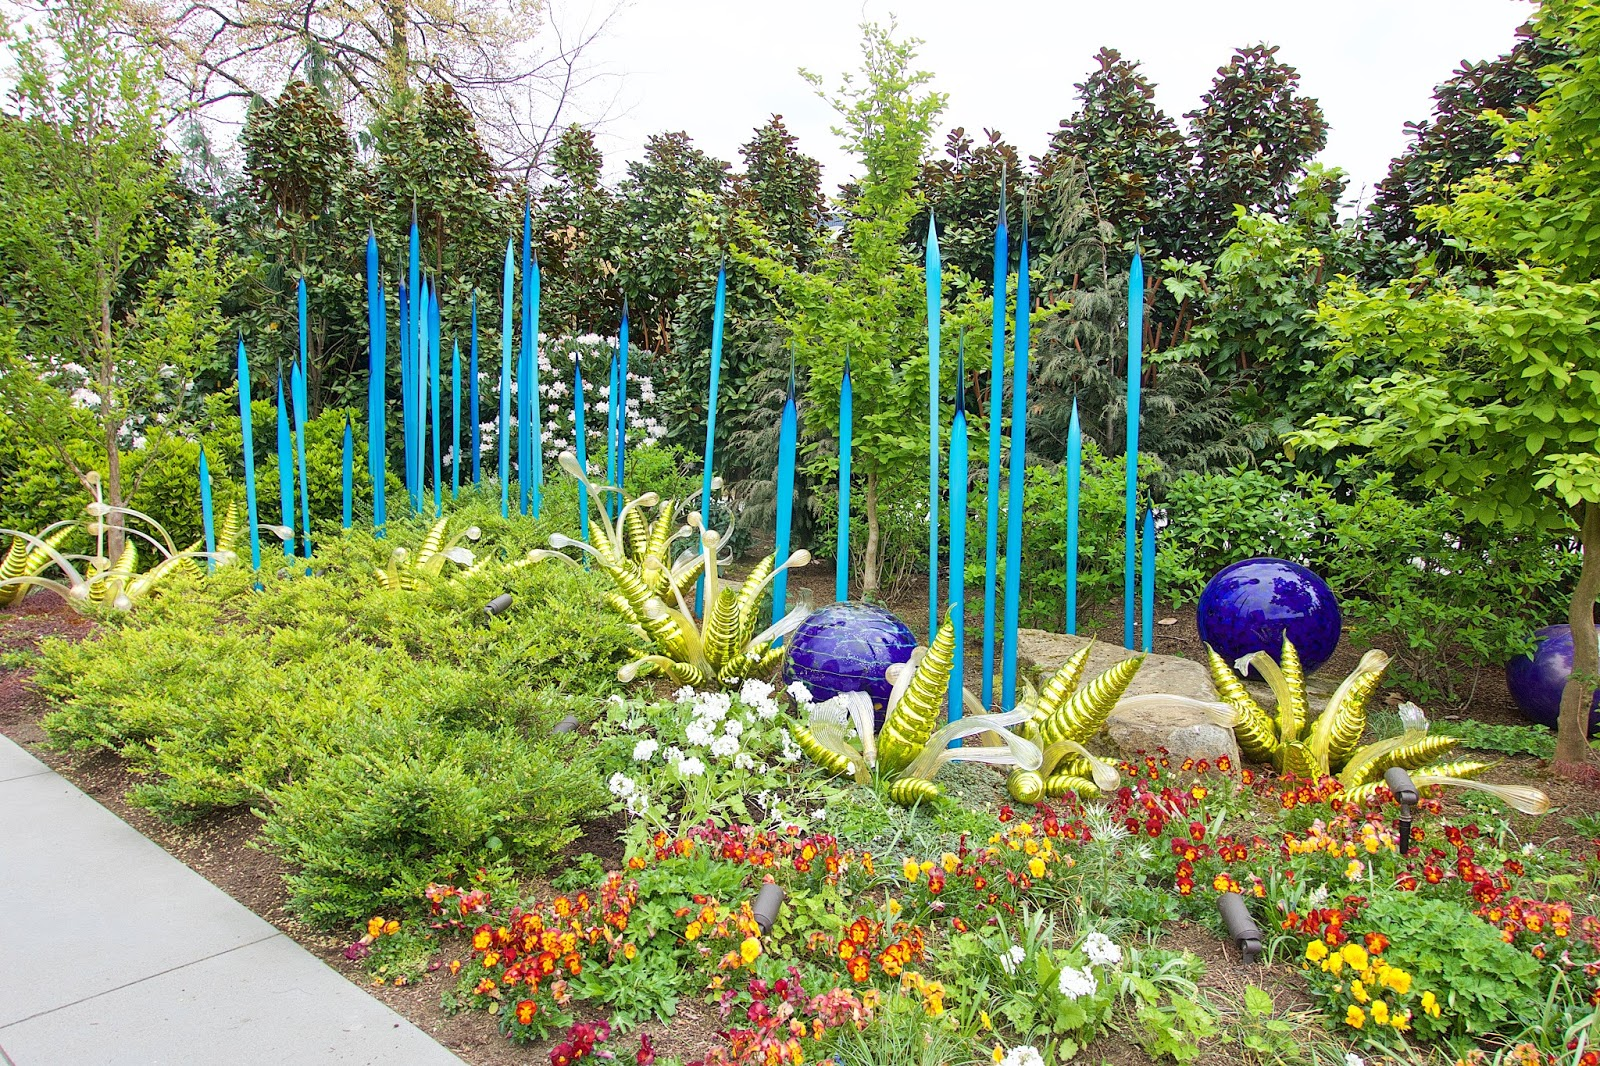 chihuly garden and glass - photo #13